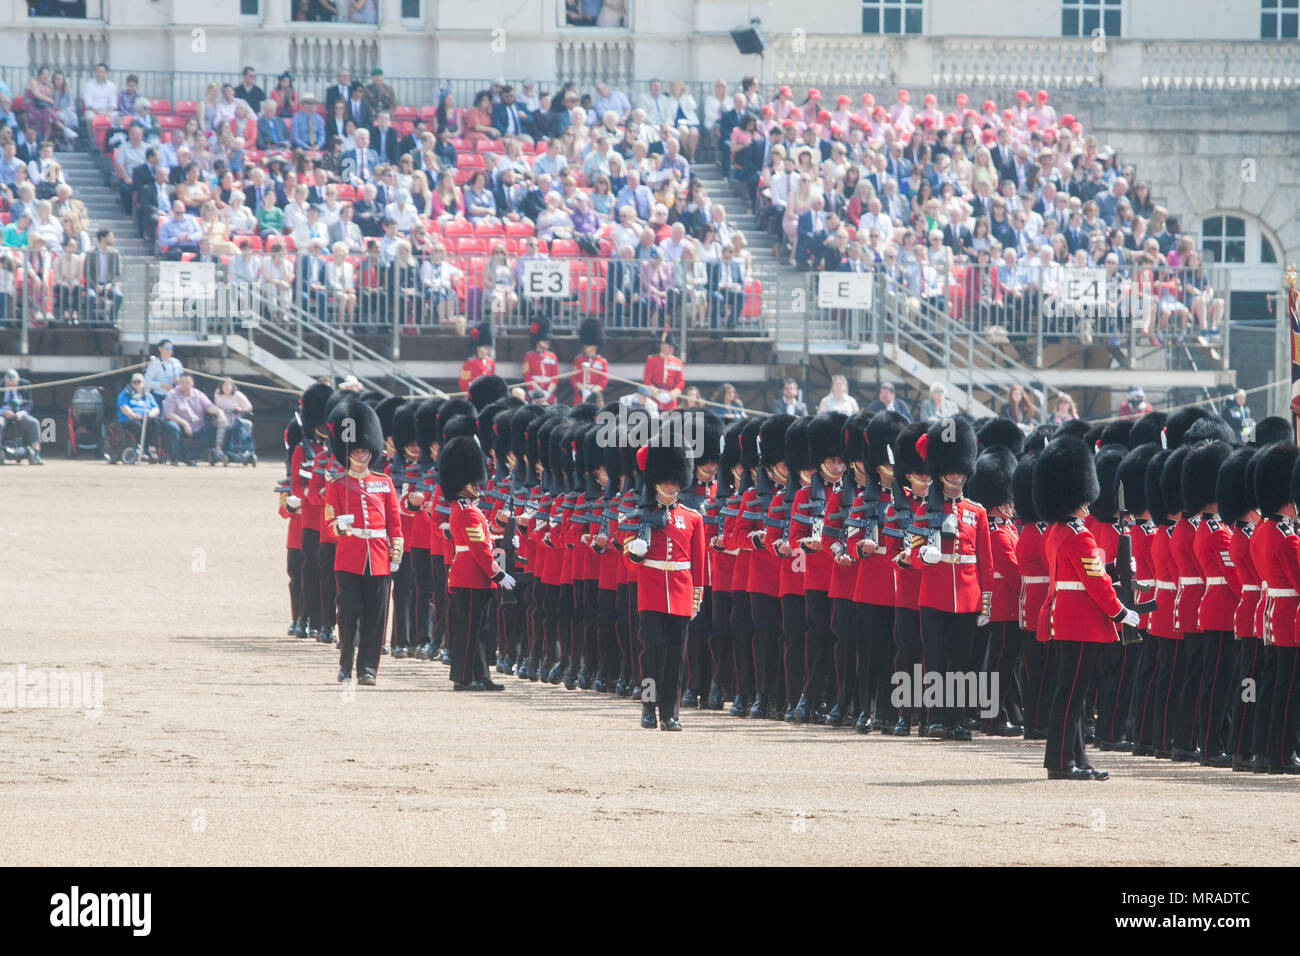 London UK. 26th May 2018. The Major General's Review, the first rehearsal for the Trooping the Colour parade on the Queen's official birthday is held in sweltering heat Credit: amer ghazzal/Alamy Live News Stock Photo